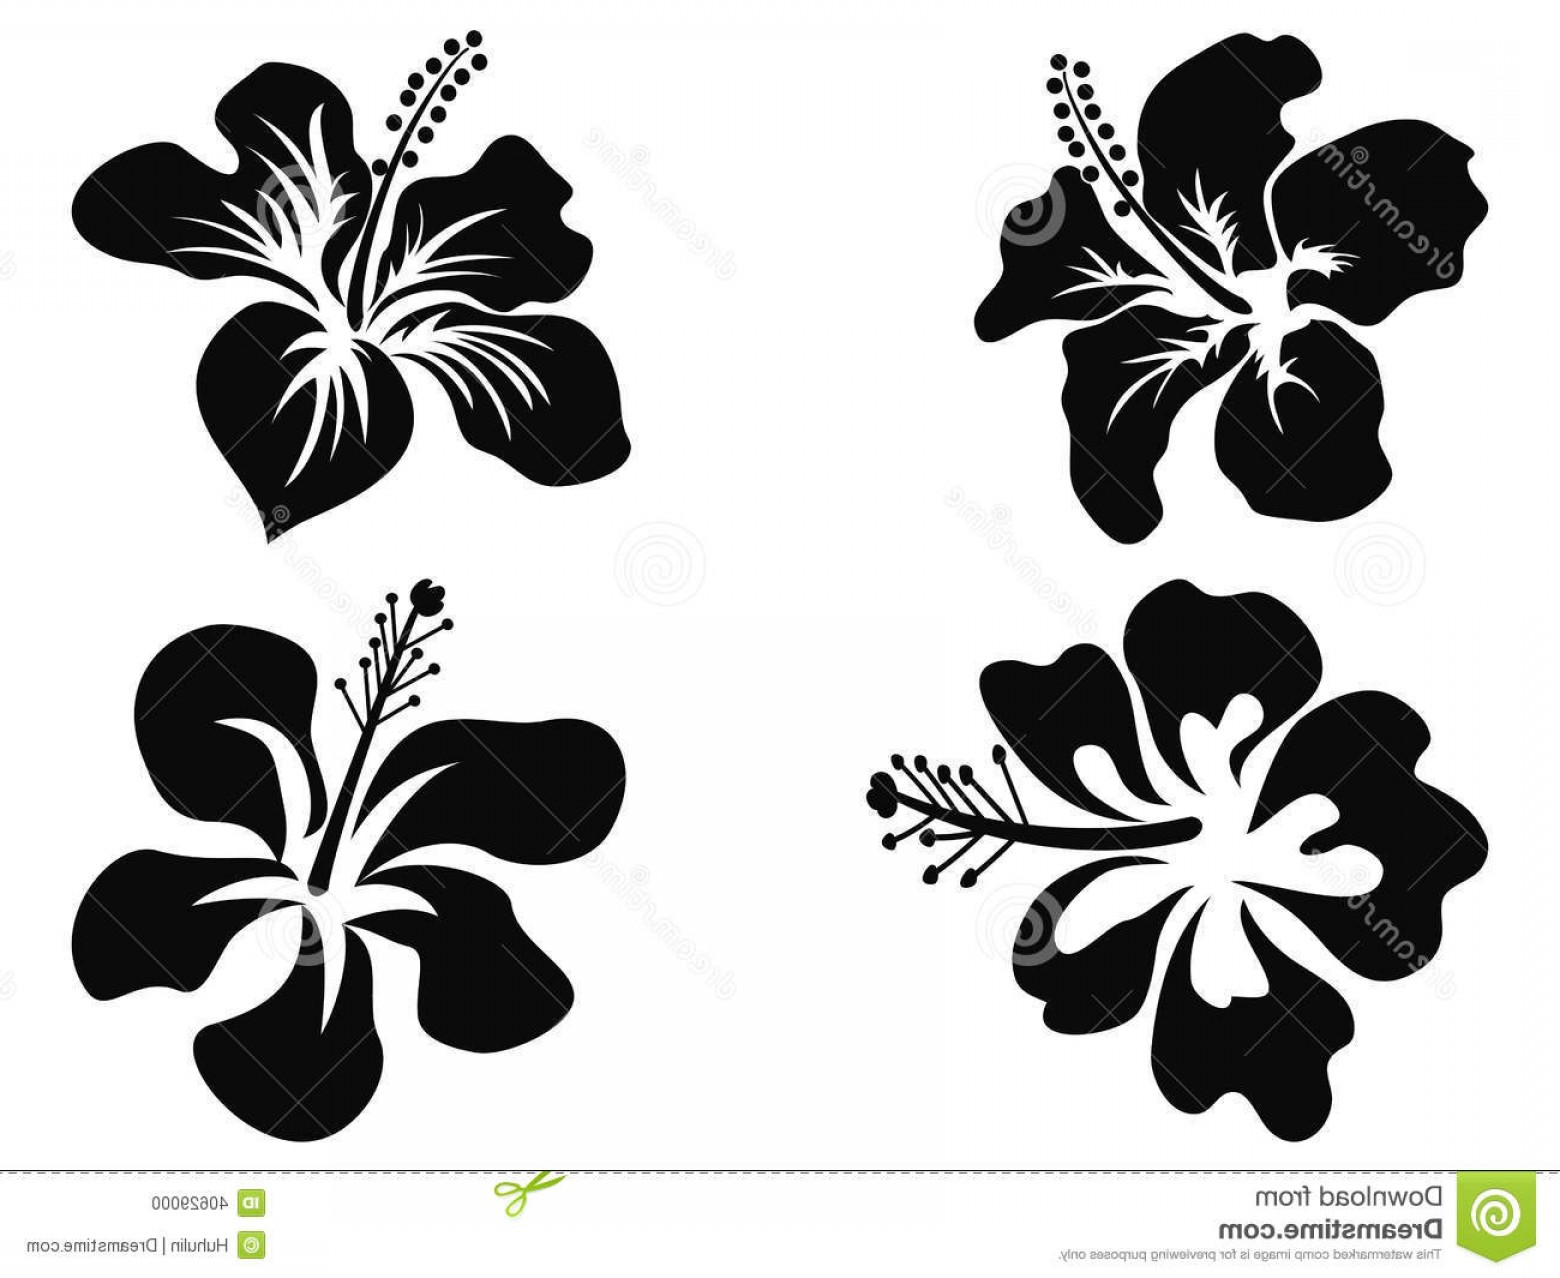 Hawaii State Flower Vector Art: Stock Photo Hibiscus Vector Silhouettes Isolated Black White Background Image